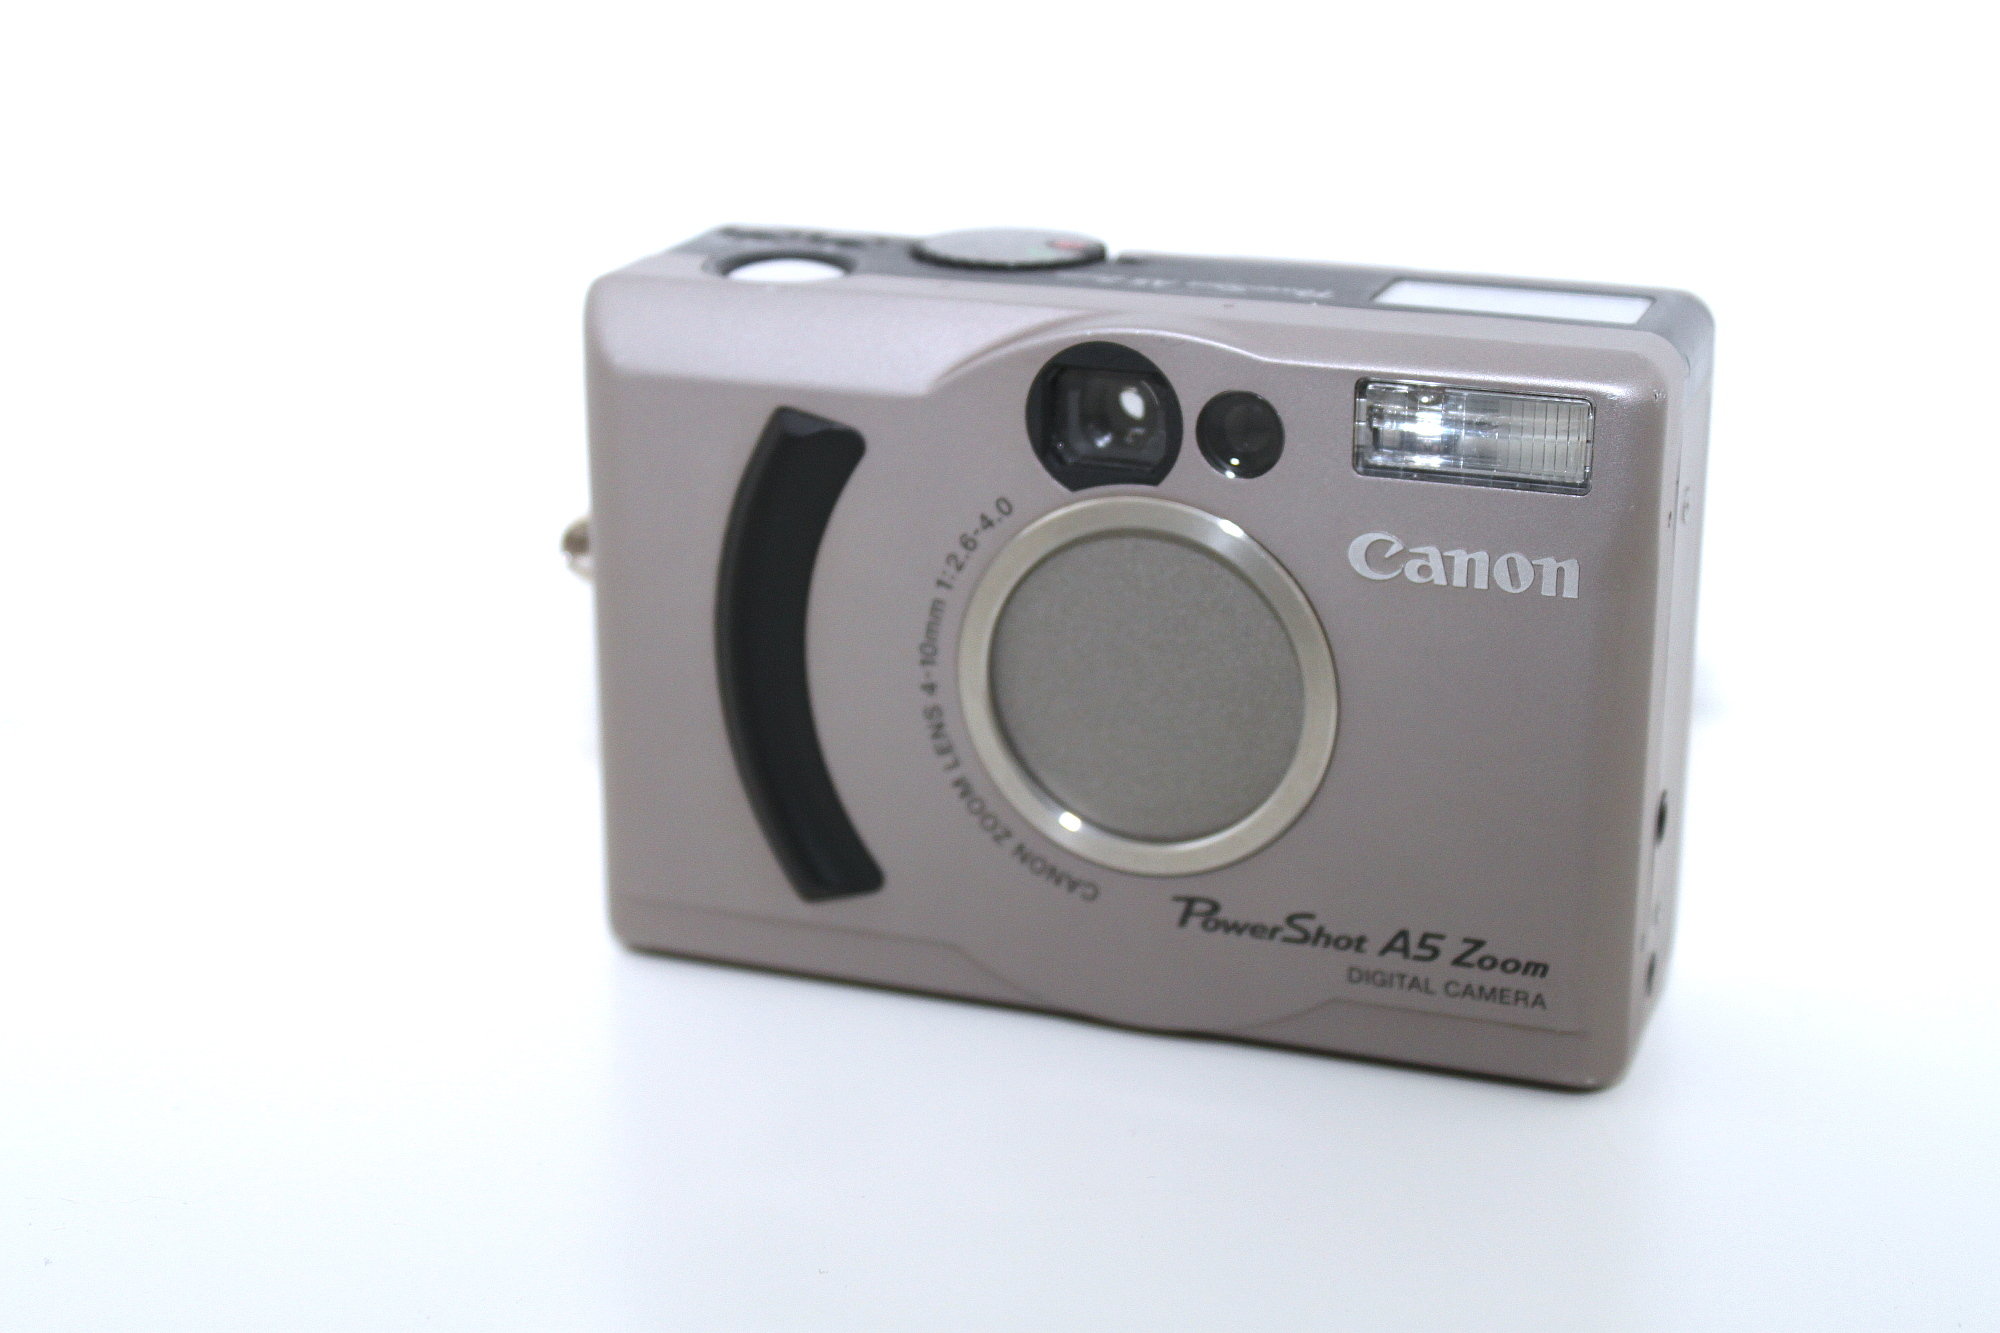 Canon PowerShot A5 Zoom (1998)